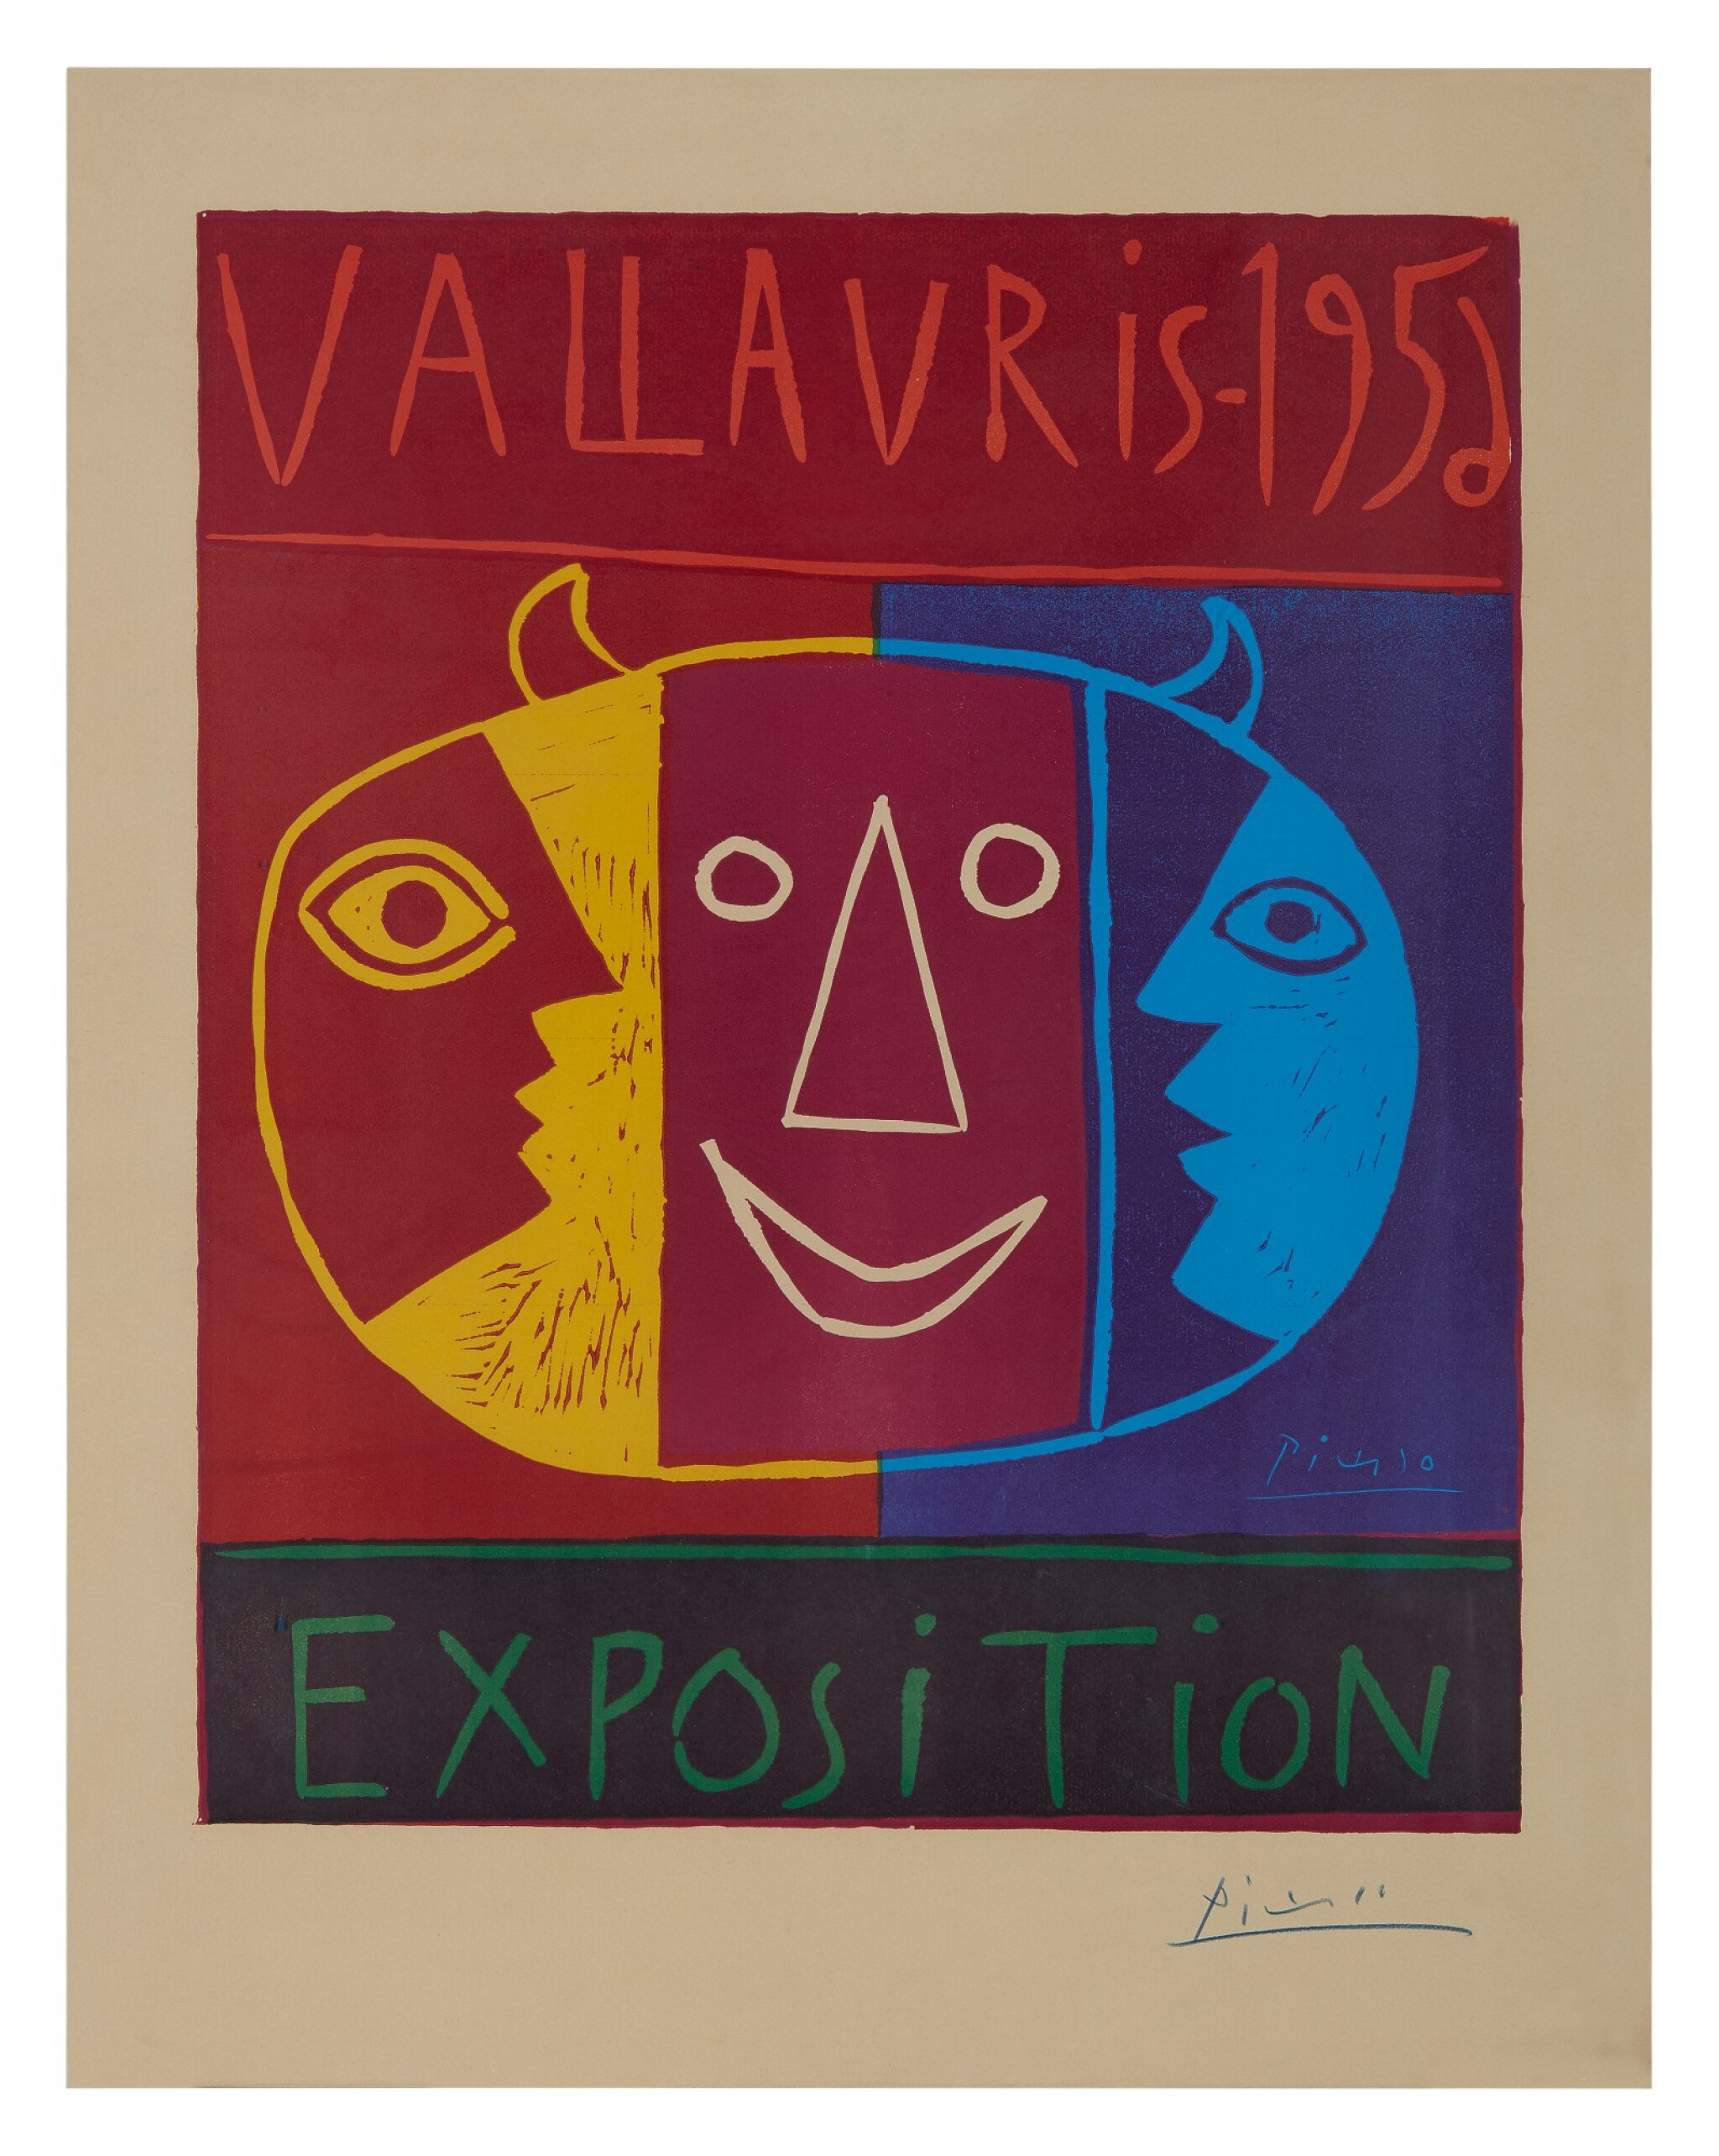 View full screen - View 1 of Lot 4. PABLO PICASSO | VALLAURIS 1956 EXPOSITION (B. 1271; BA. 1042; CZWIKLITZER 19).